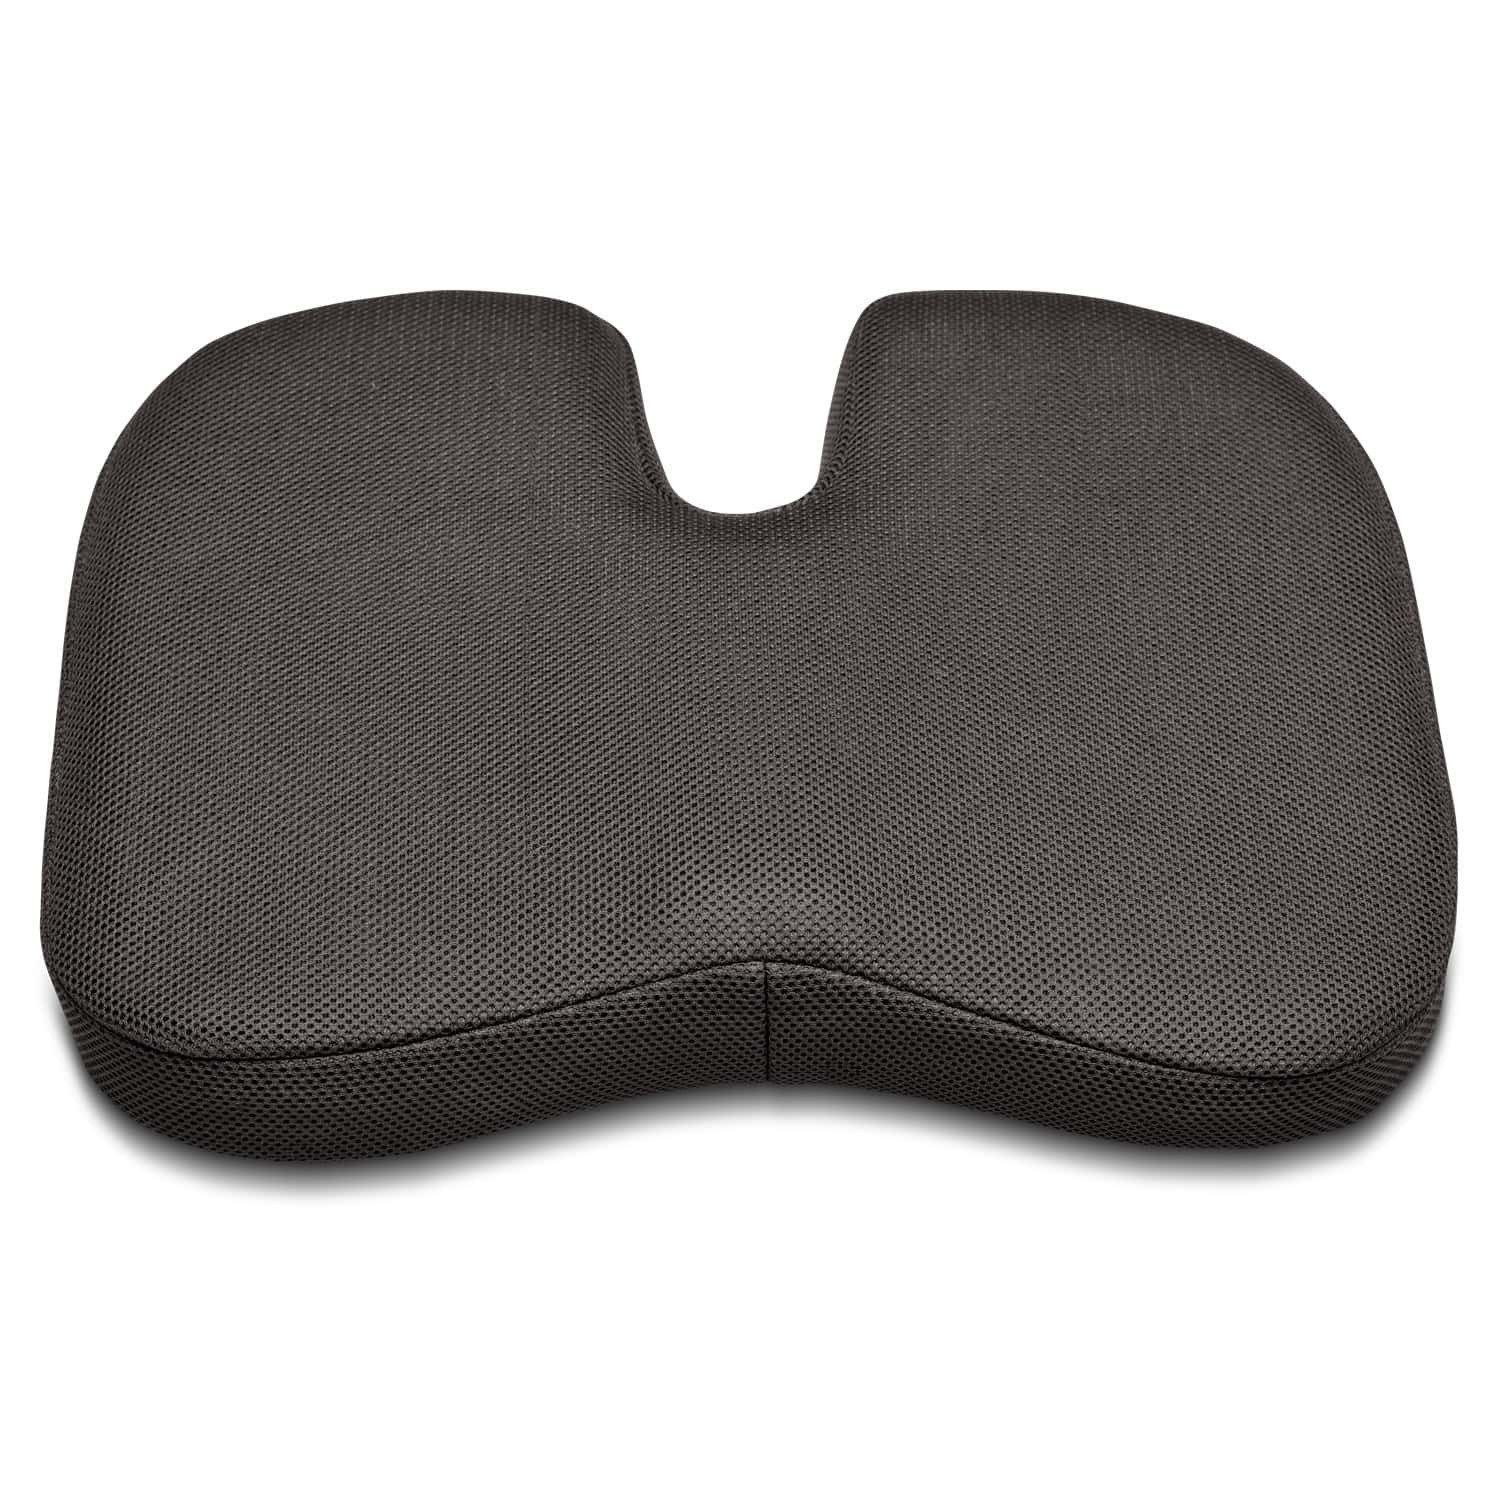 Pharmeasy Coccyx Cushion For Tail Bone Support - Upto 80kg